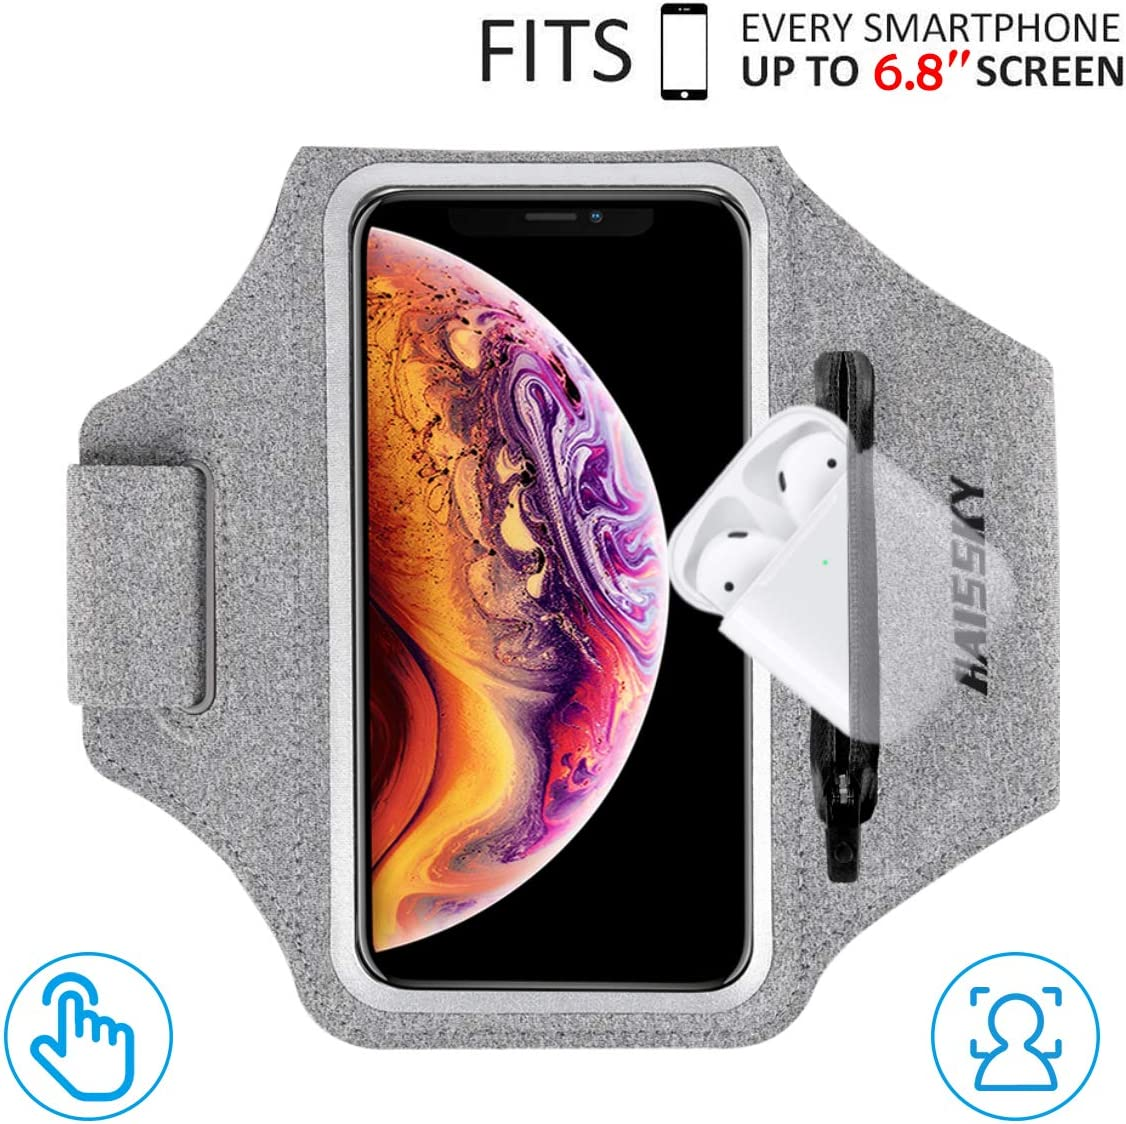 """HAISSKY Armband Case with Airpods Holder/Car Key Bag Cell Phone Holder Gym Case Fits iPhone 11 Pro Max/11 Pro/Xs Max/XR 8 7 6,Galaxy S10+/S10/S10e/S9+ with Key Holder&Card Slot up to 6.8"""" (Grey)"""